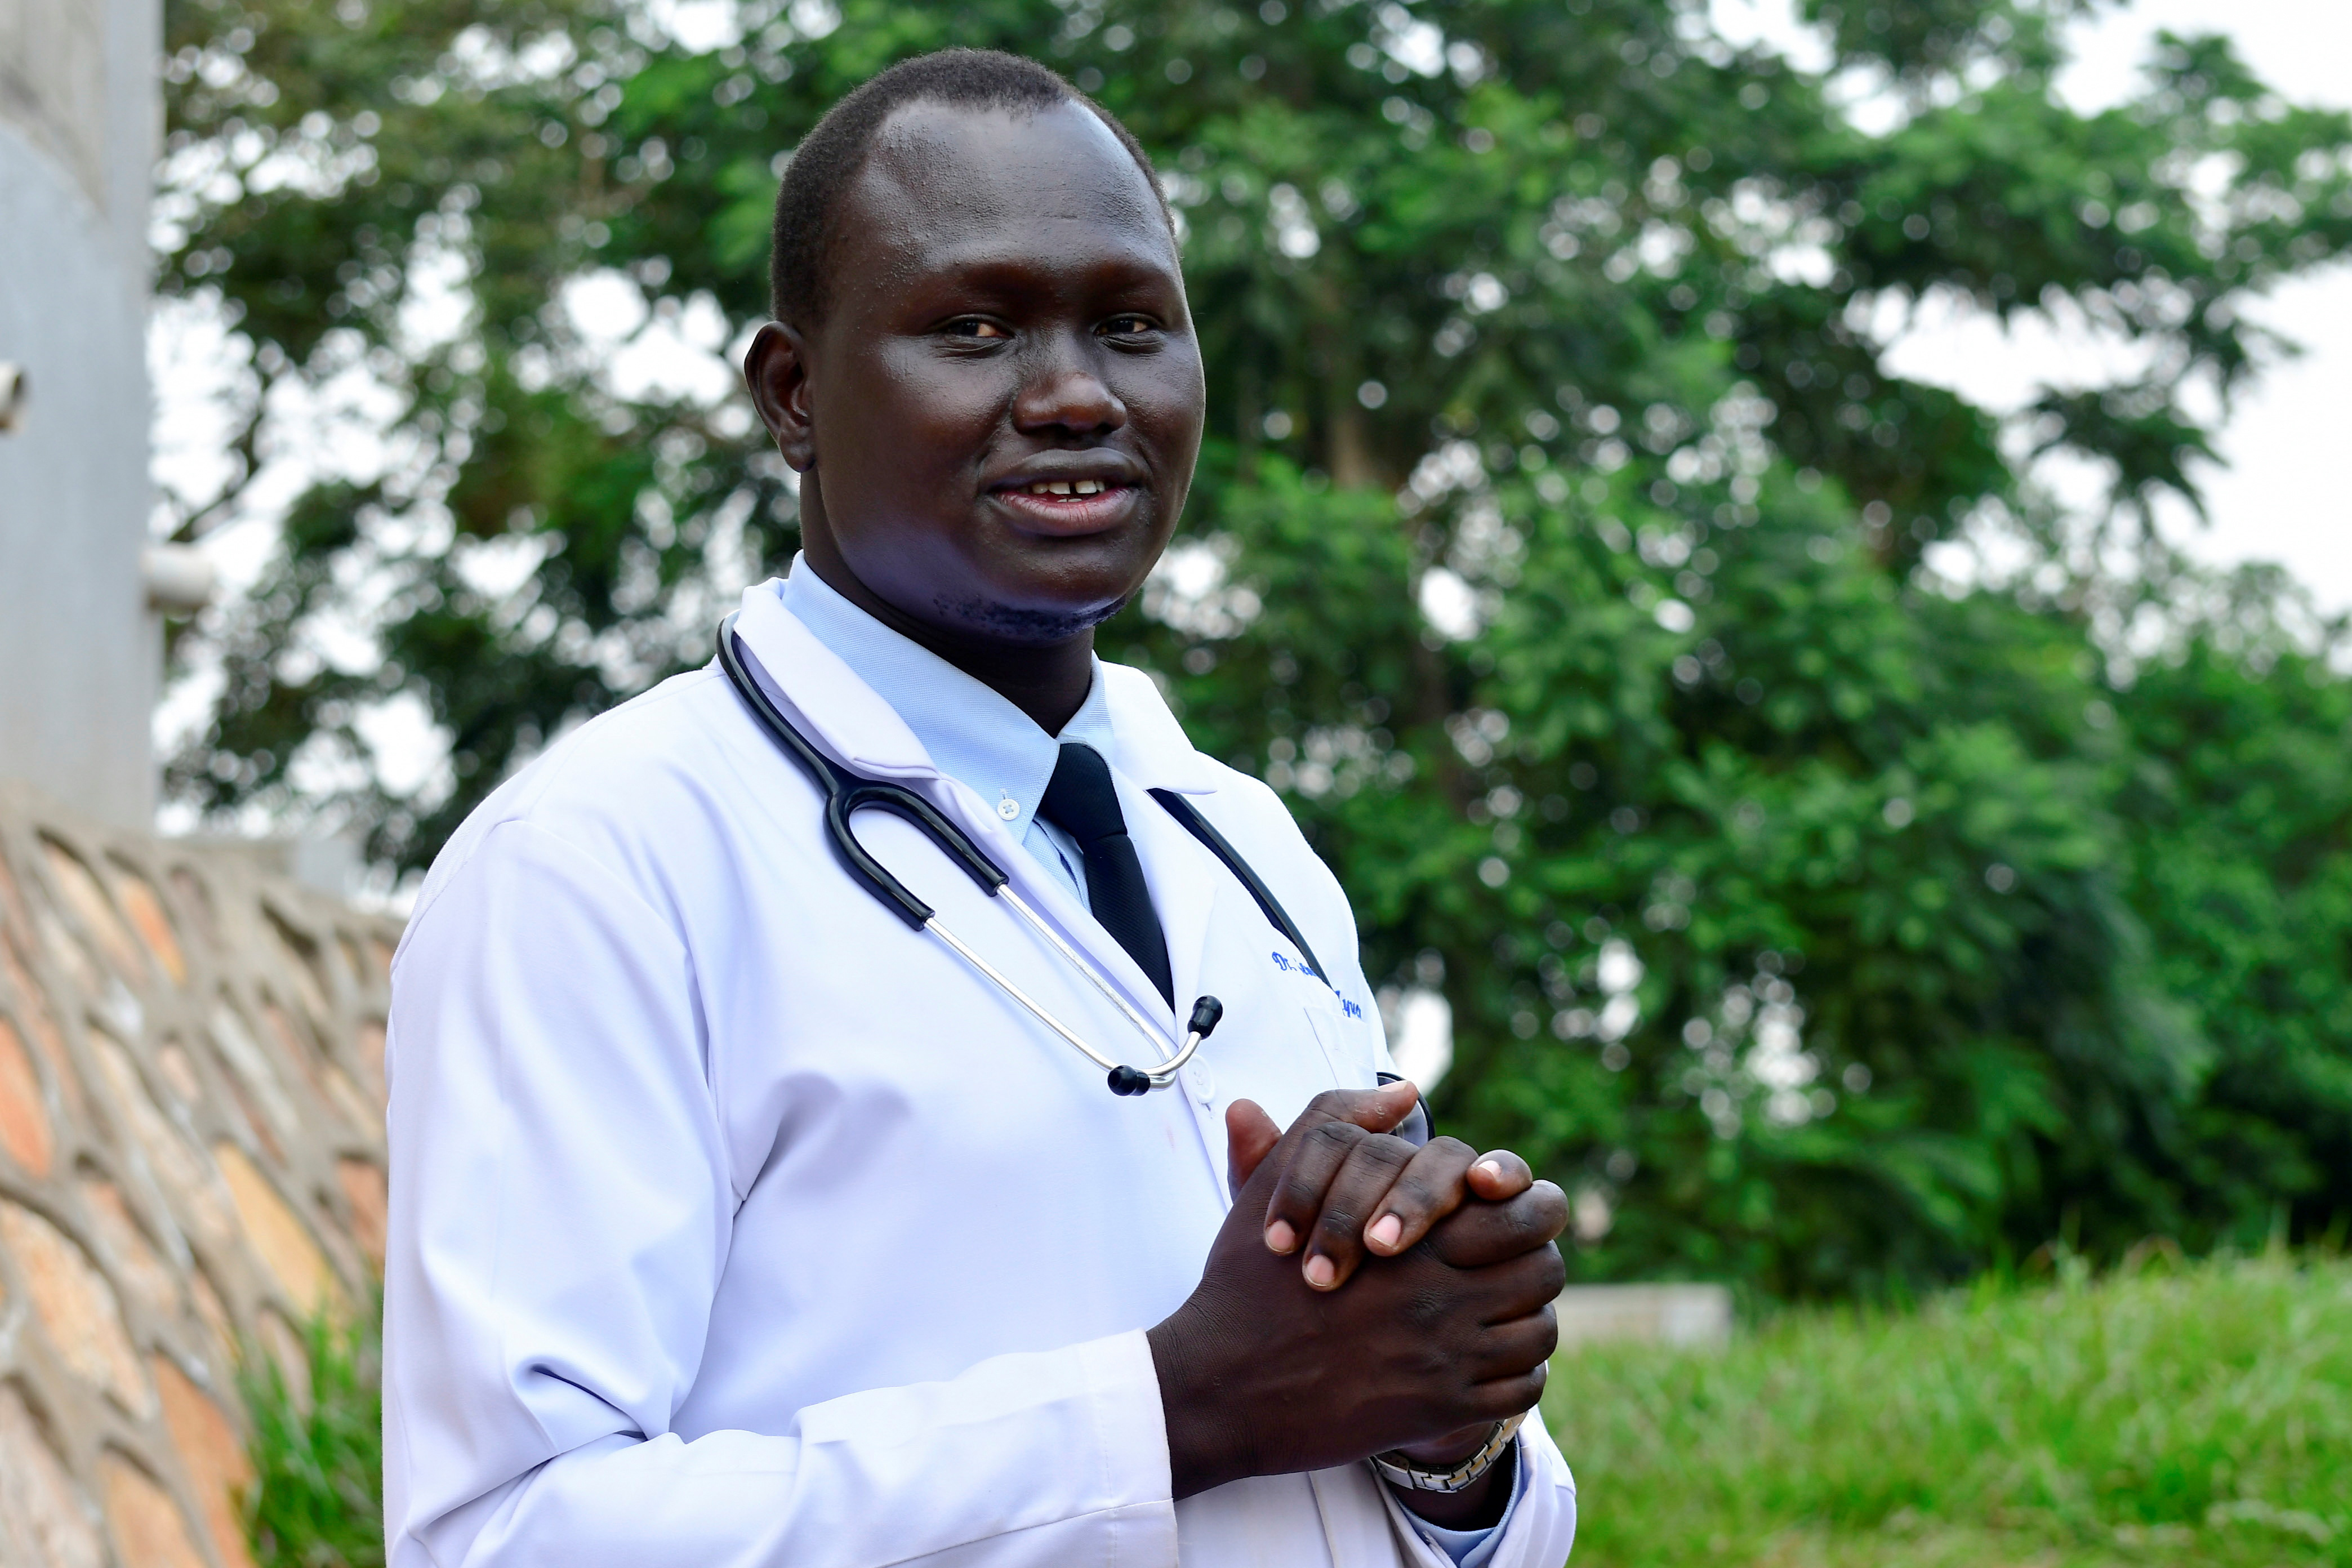 Samuel Dhol Ayeun, a trainee doctor who fled from South Sudan to Uganda. REUTERS/Abubaker Lubowa